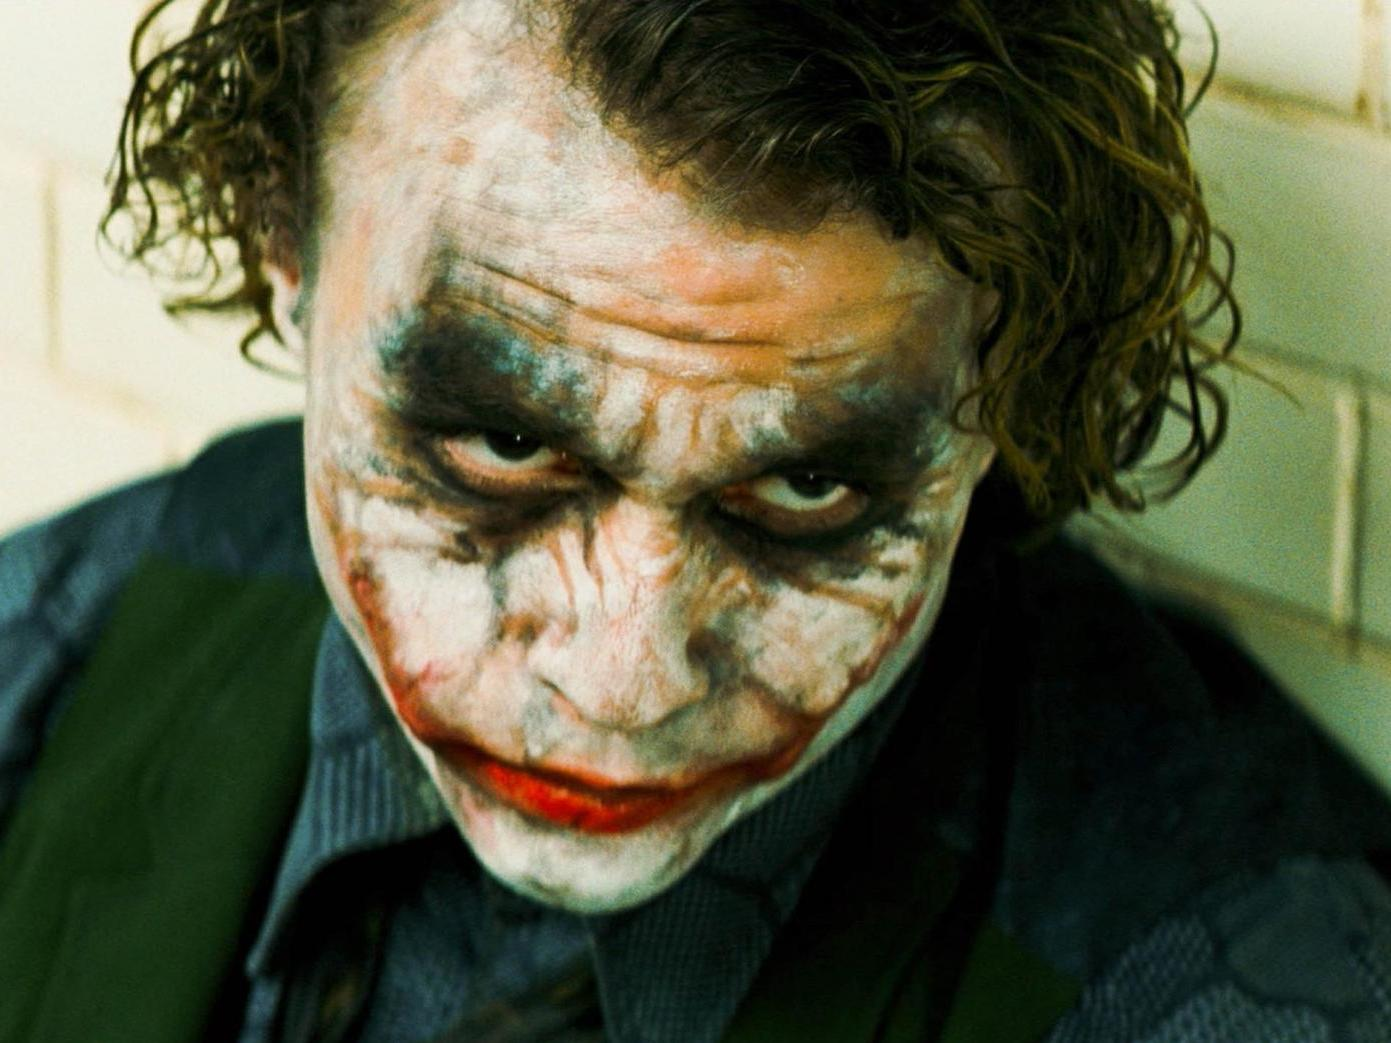 The Dark Knight almost featured a scene that would have changed the entire film